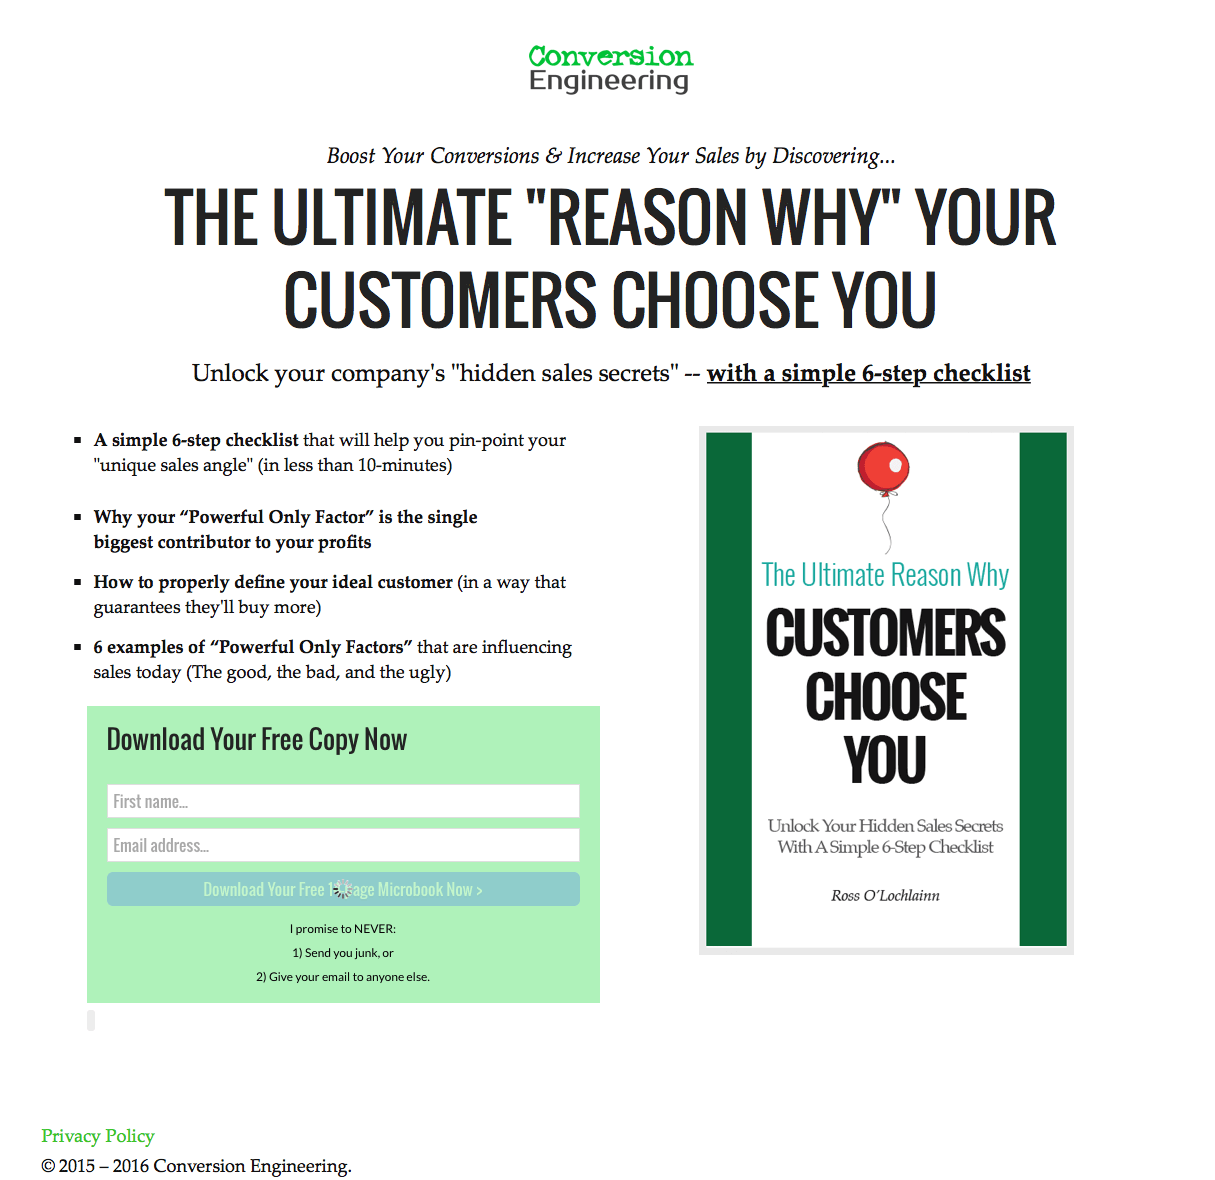 Customers Choose You